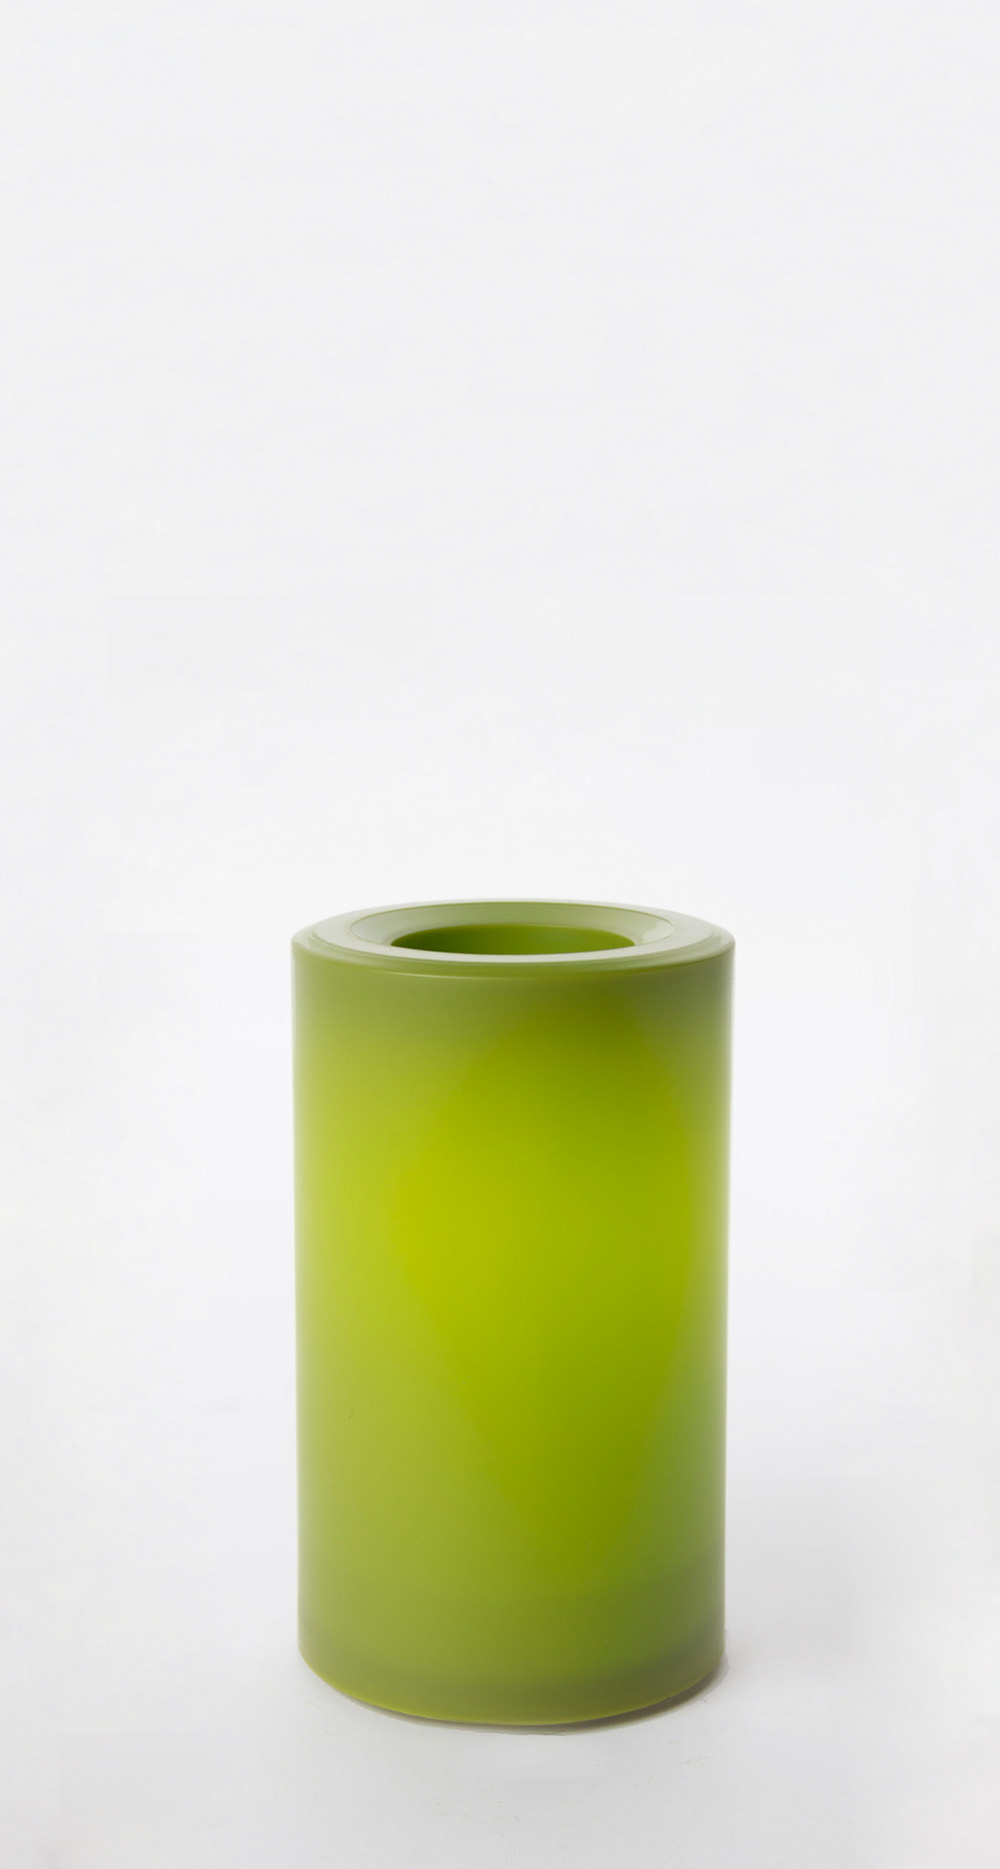 5 Inch Flameless Outdoor Pillar Candle with Timer - Green